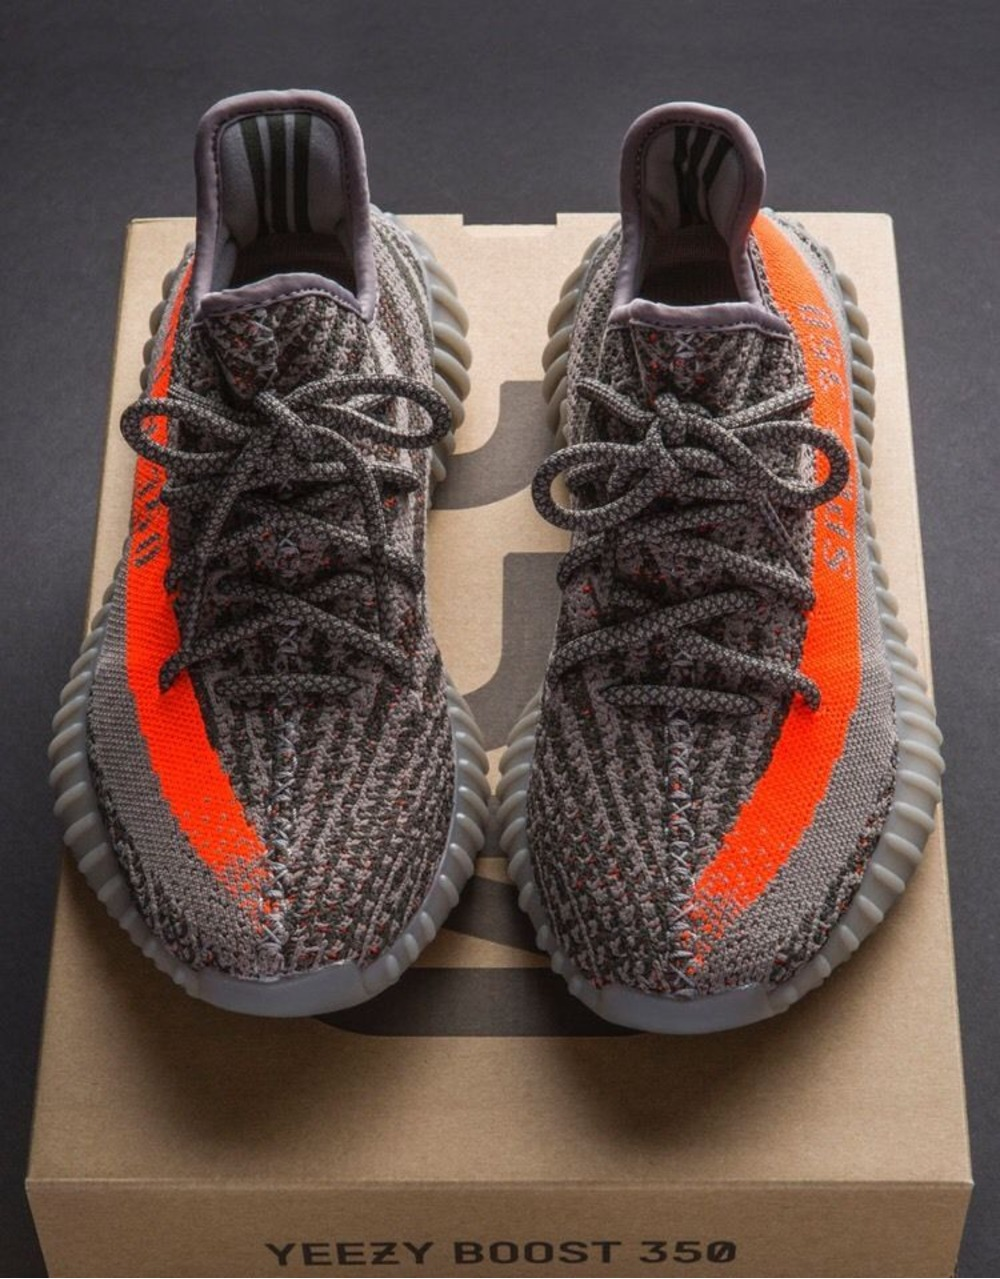 YEEZY 350 V2 BOOST Copper Black on feet in box